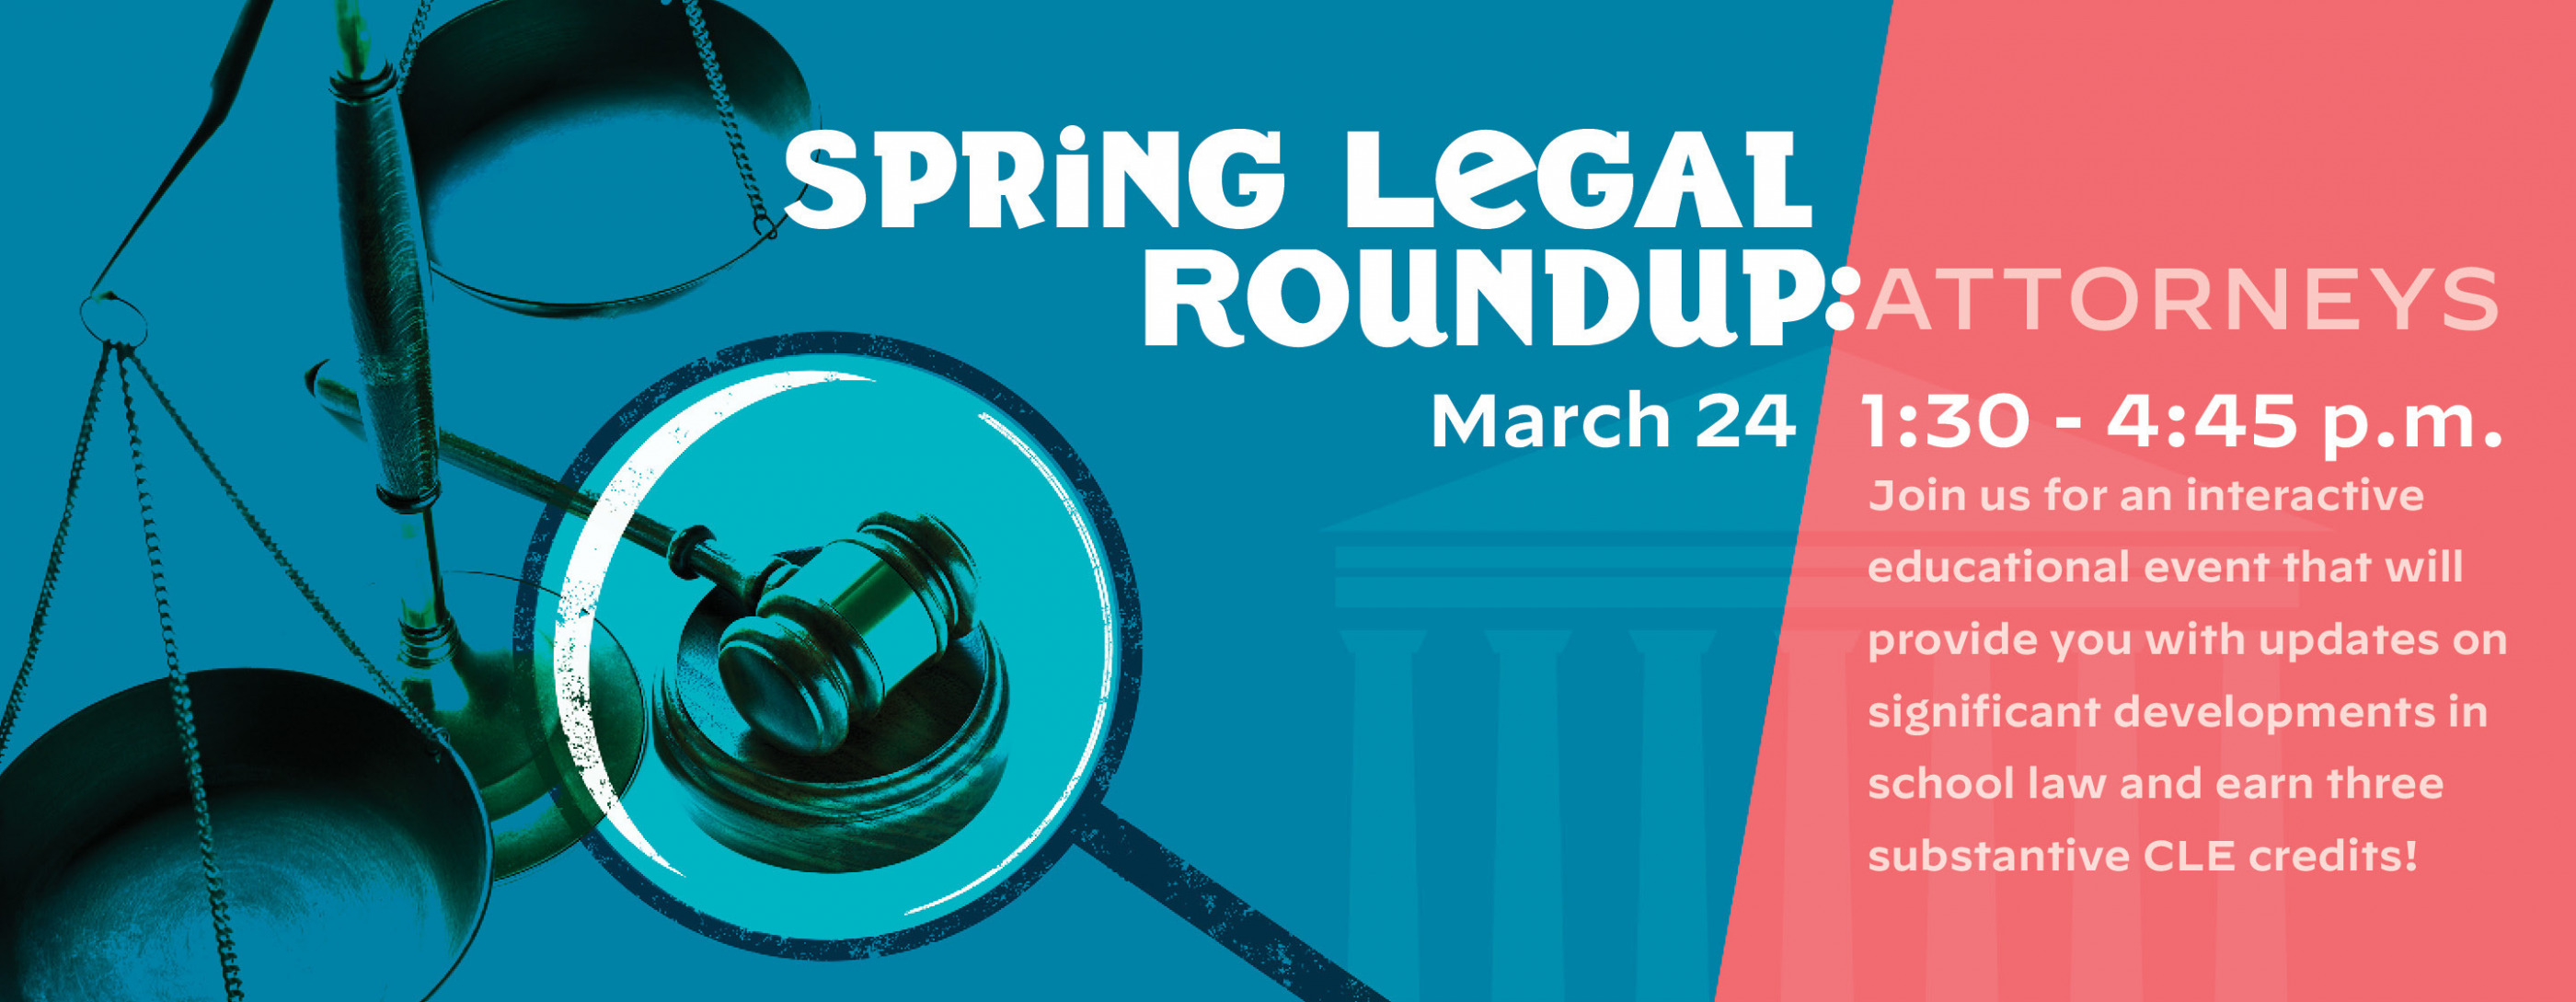 Spring Legal Roundup: Attorneys